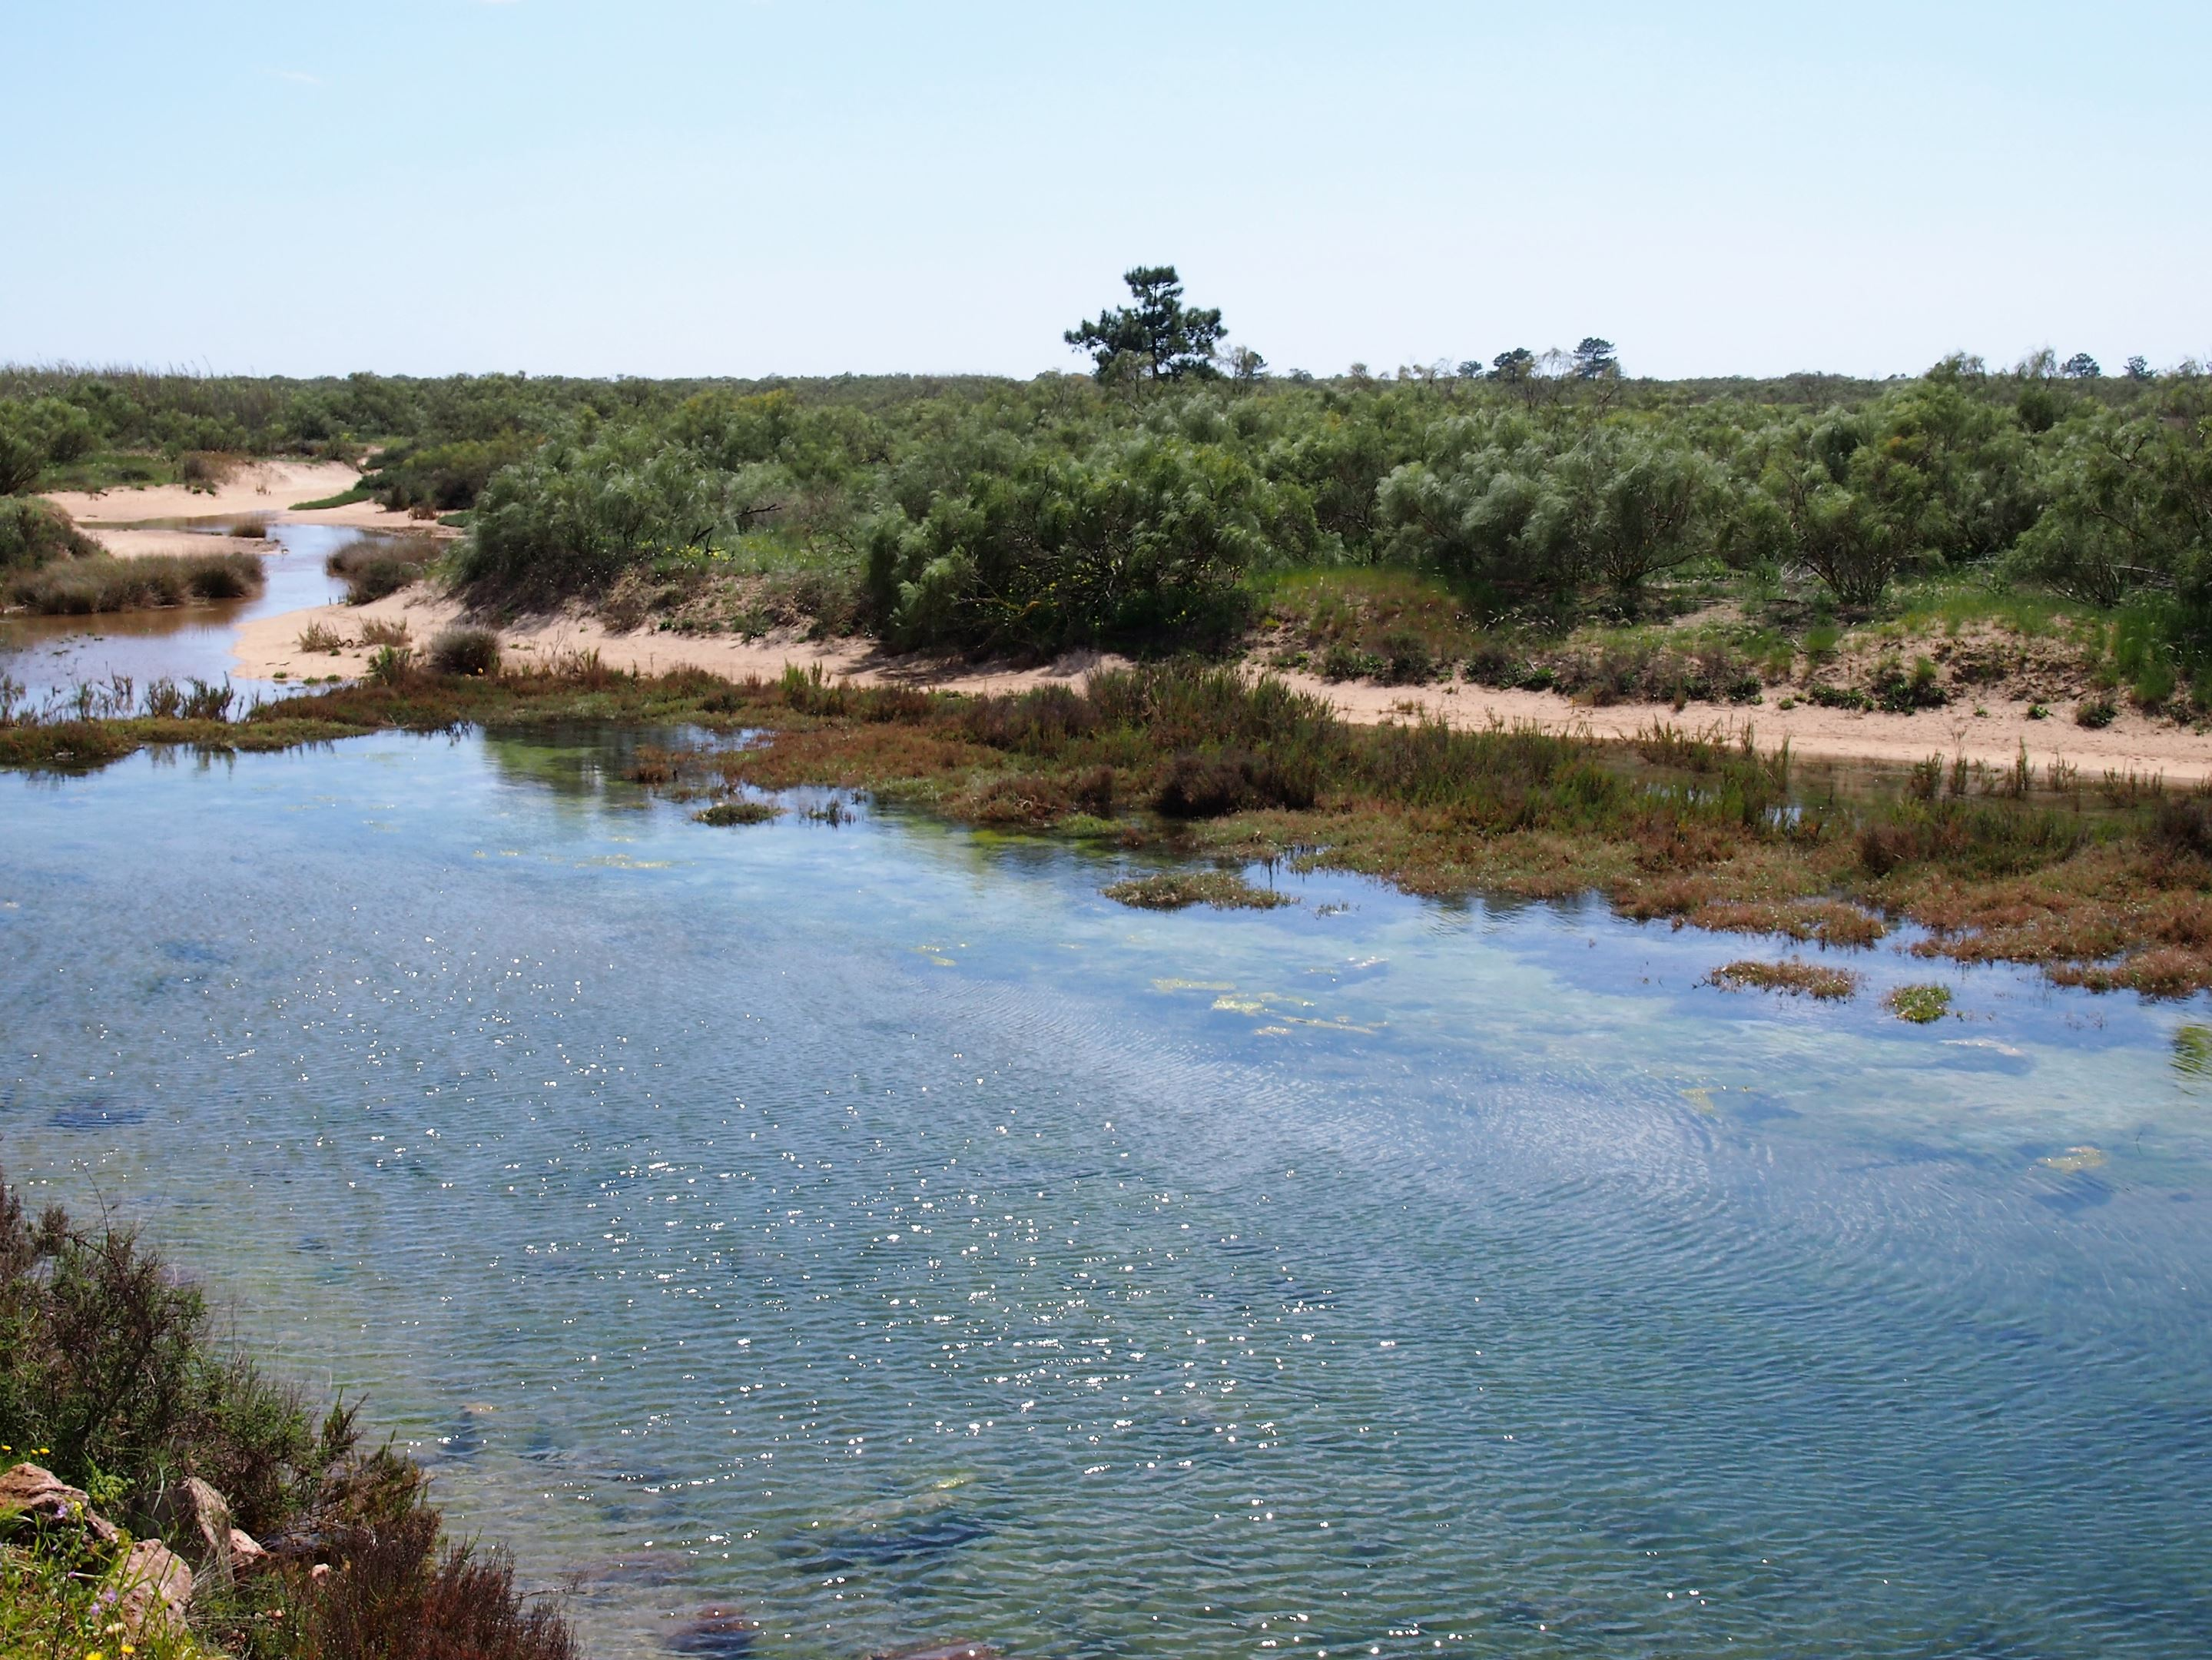 As you walk to Praia de Santo António, on the right you will see the largest forest in the Algarve, Mata Nacional das Dunas Litorais